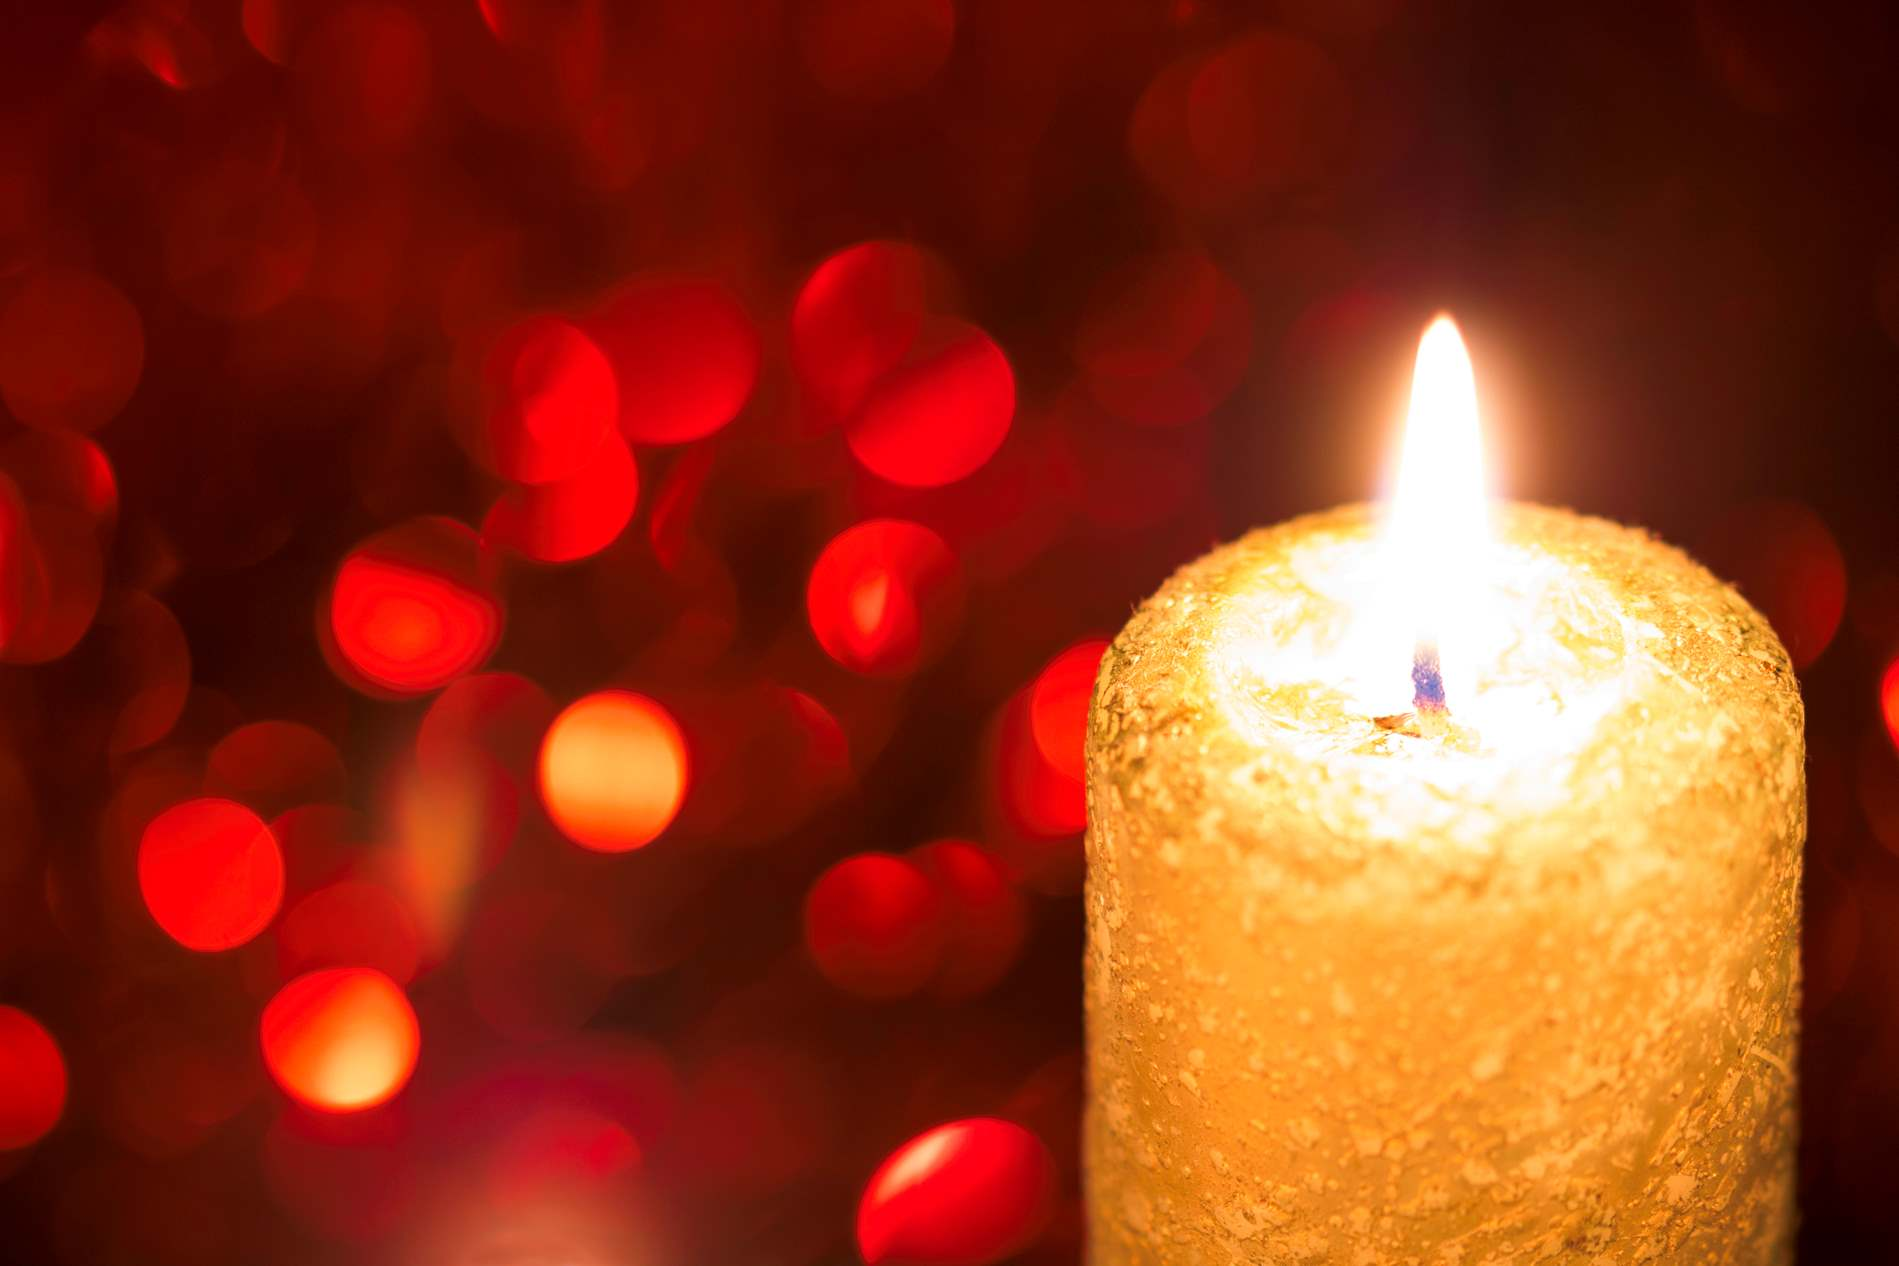 Yellow Christmas Candle Light With Red Bokeh - PhotoHDX